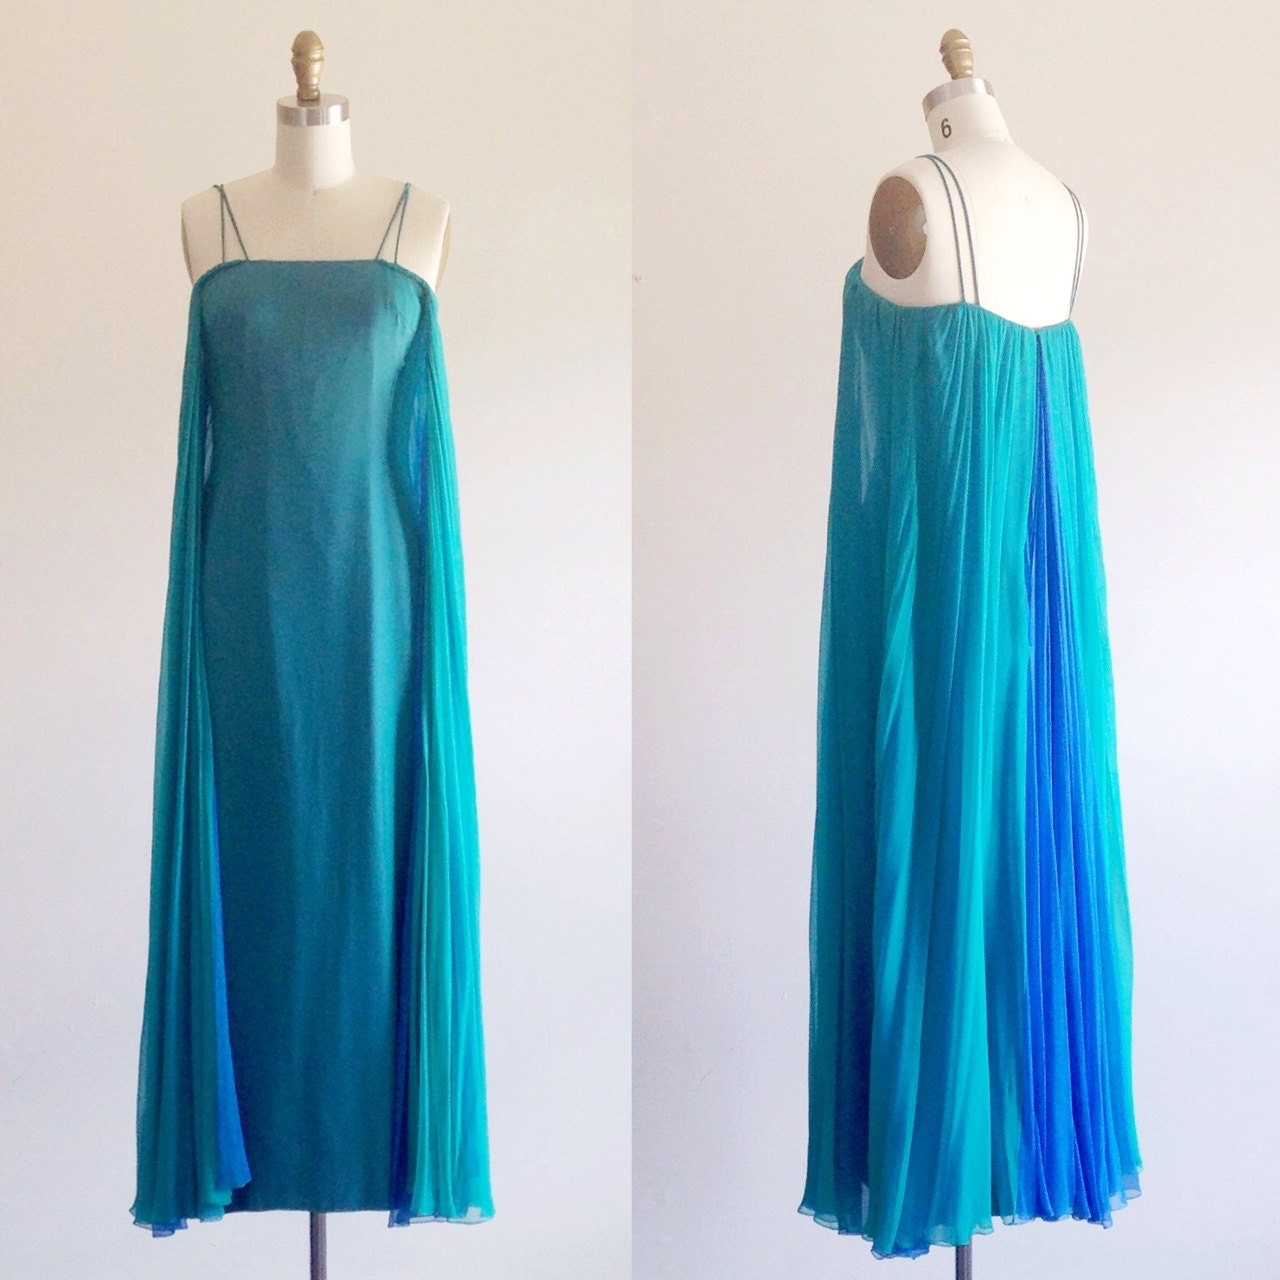 Teal formal dress Teal prom dress Event gown Formal gown